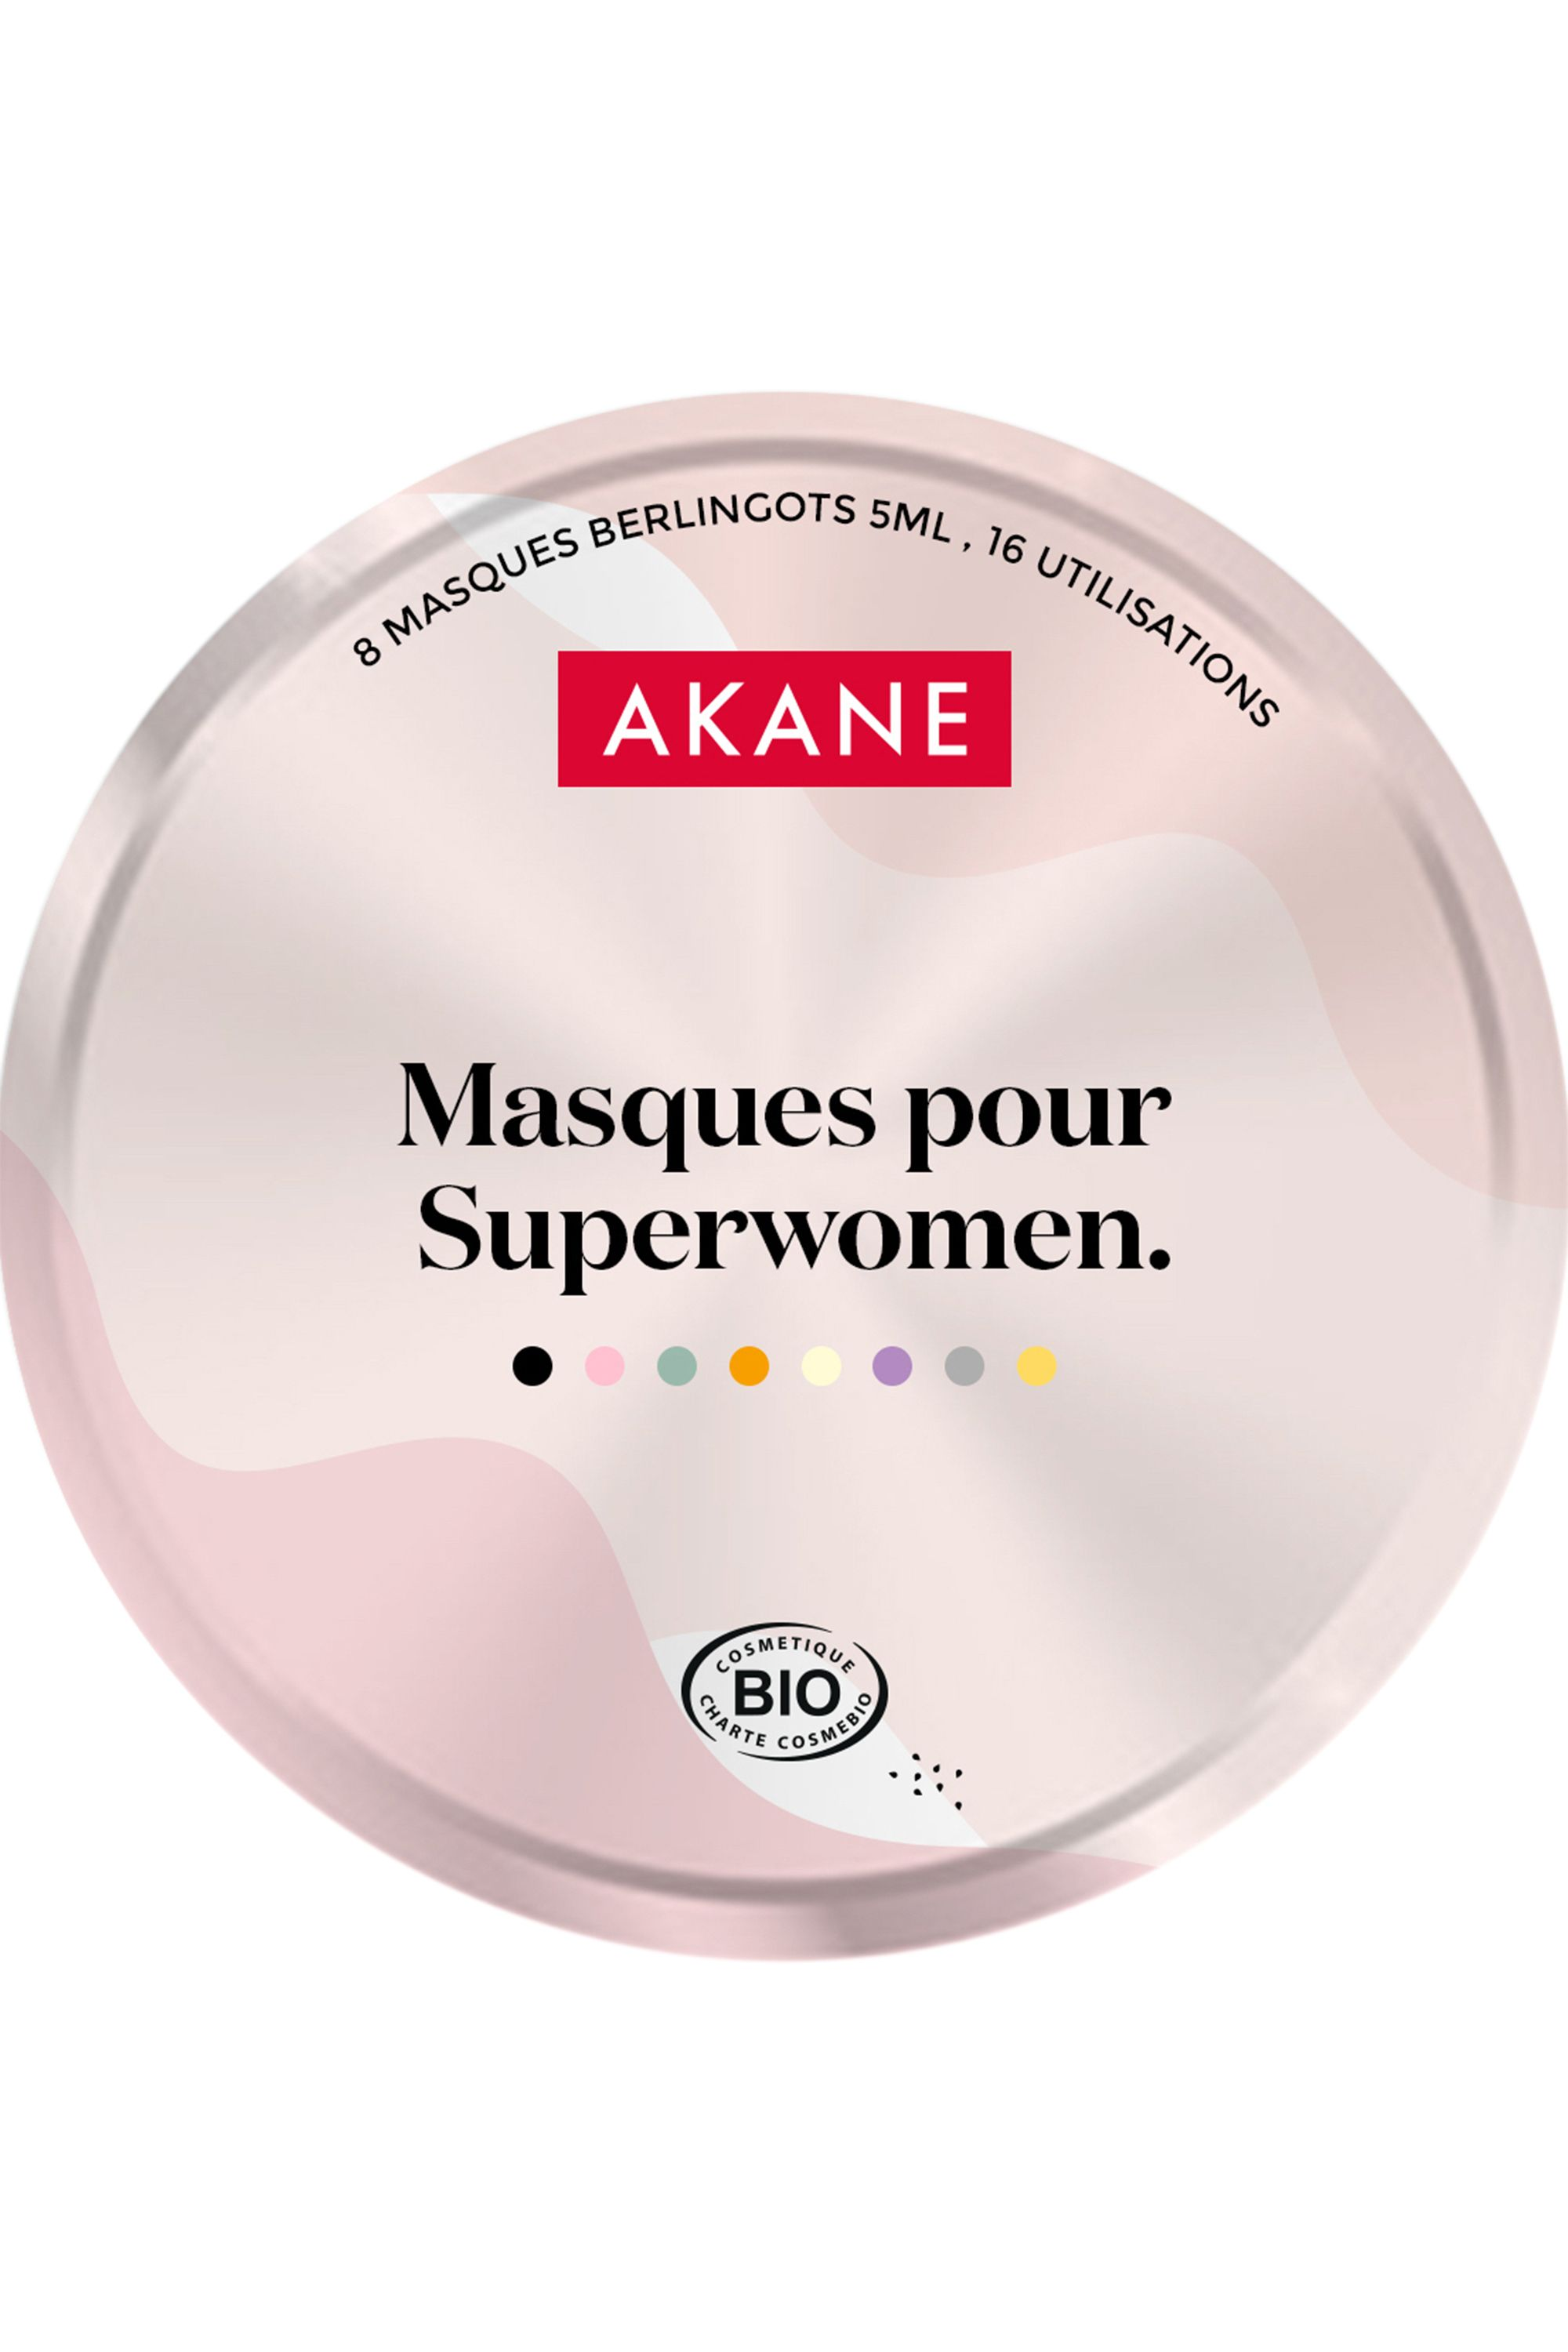 Blissim : Akane - Coffret multi-masques - Coffret multi-masques